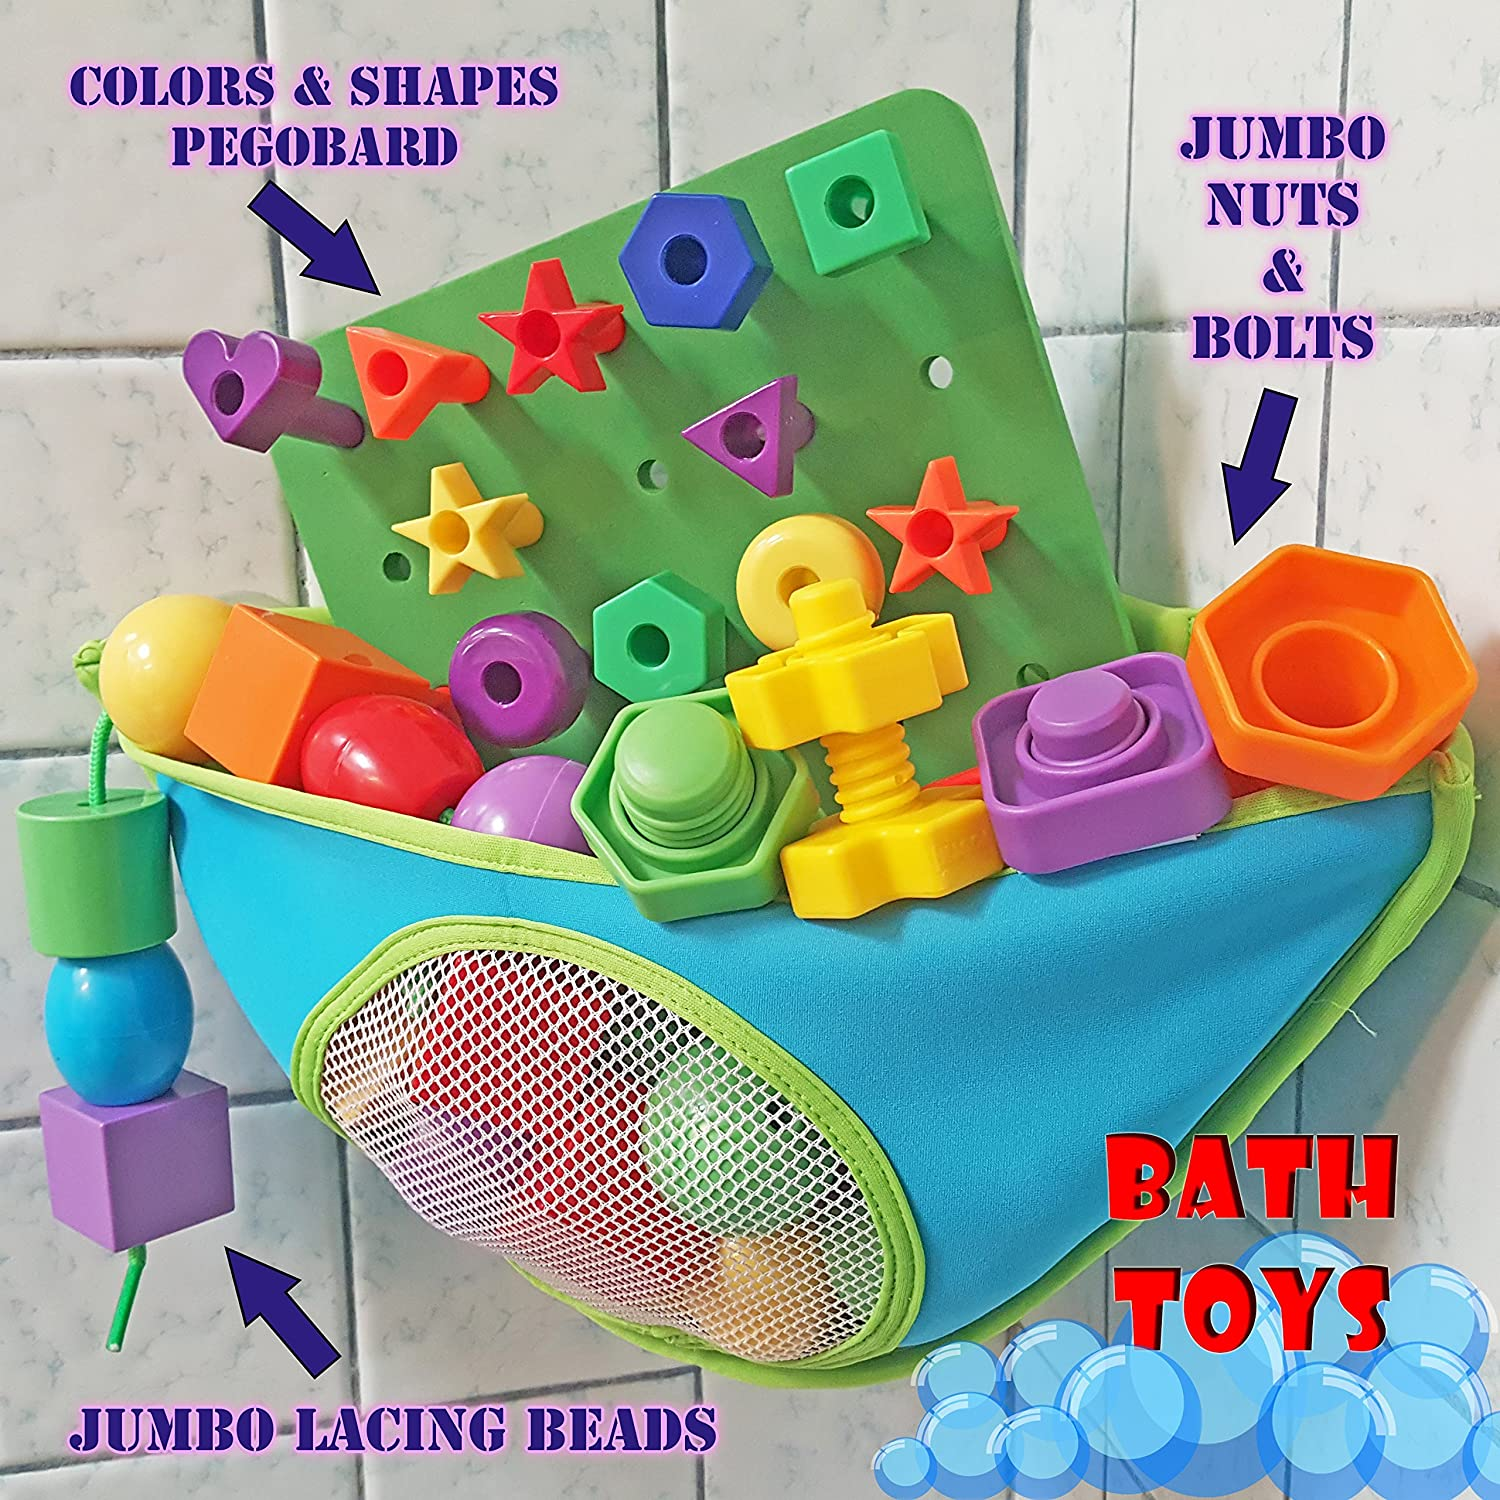 Amazon.com: Basic Shapes and Colors Toddler Pegboard Set with ...